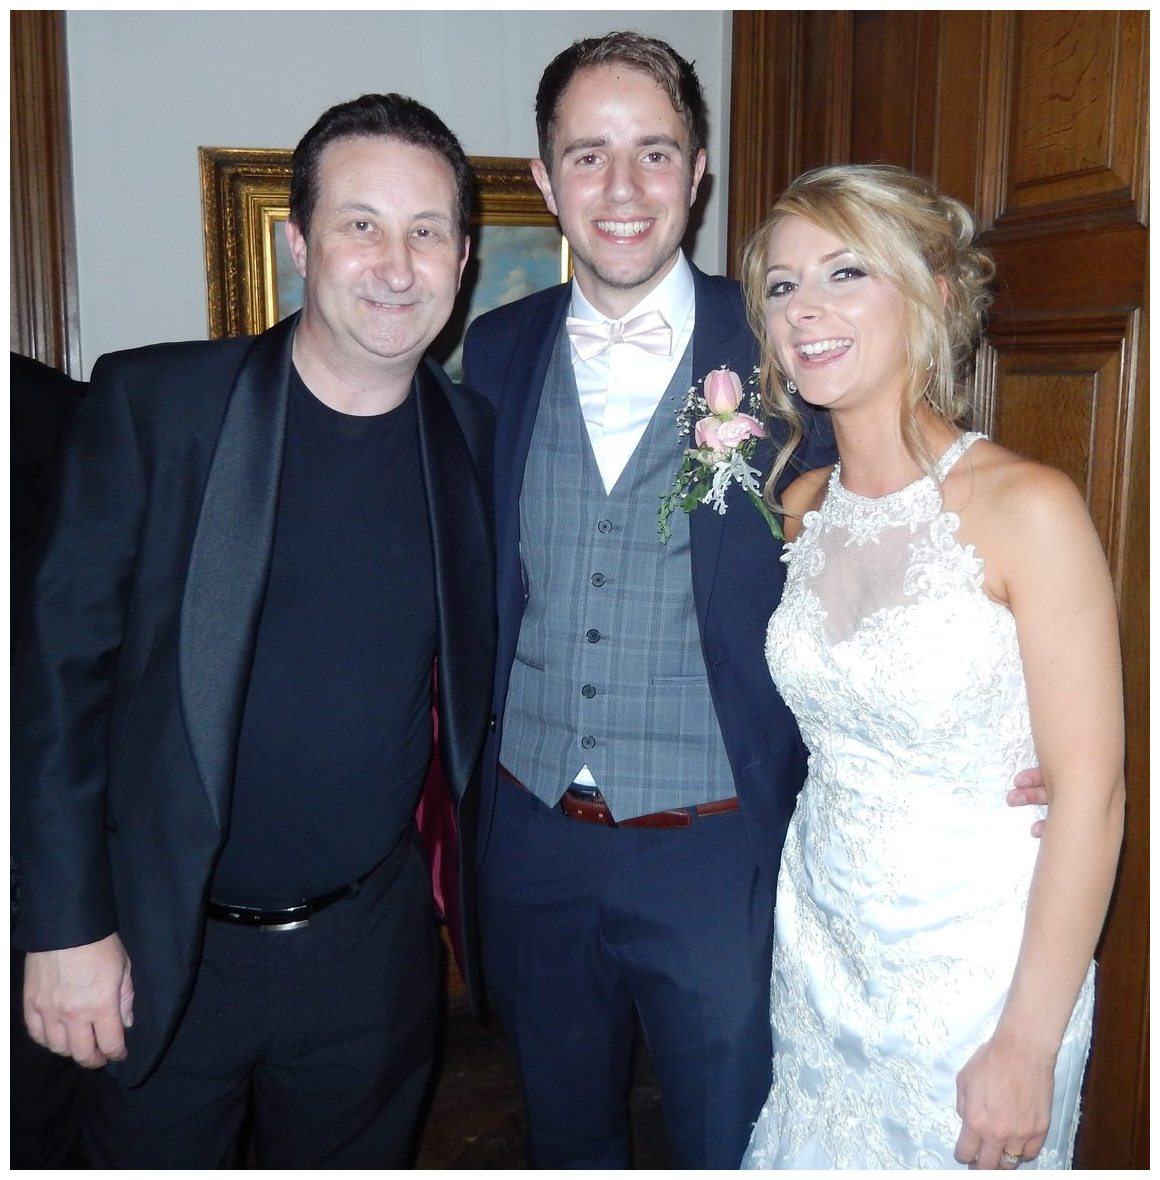 Wedding magic supplied by Andy Field magician in Oxfordshire